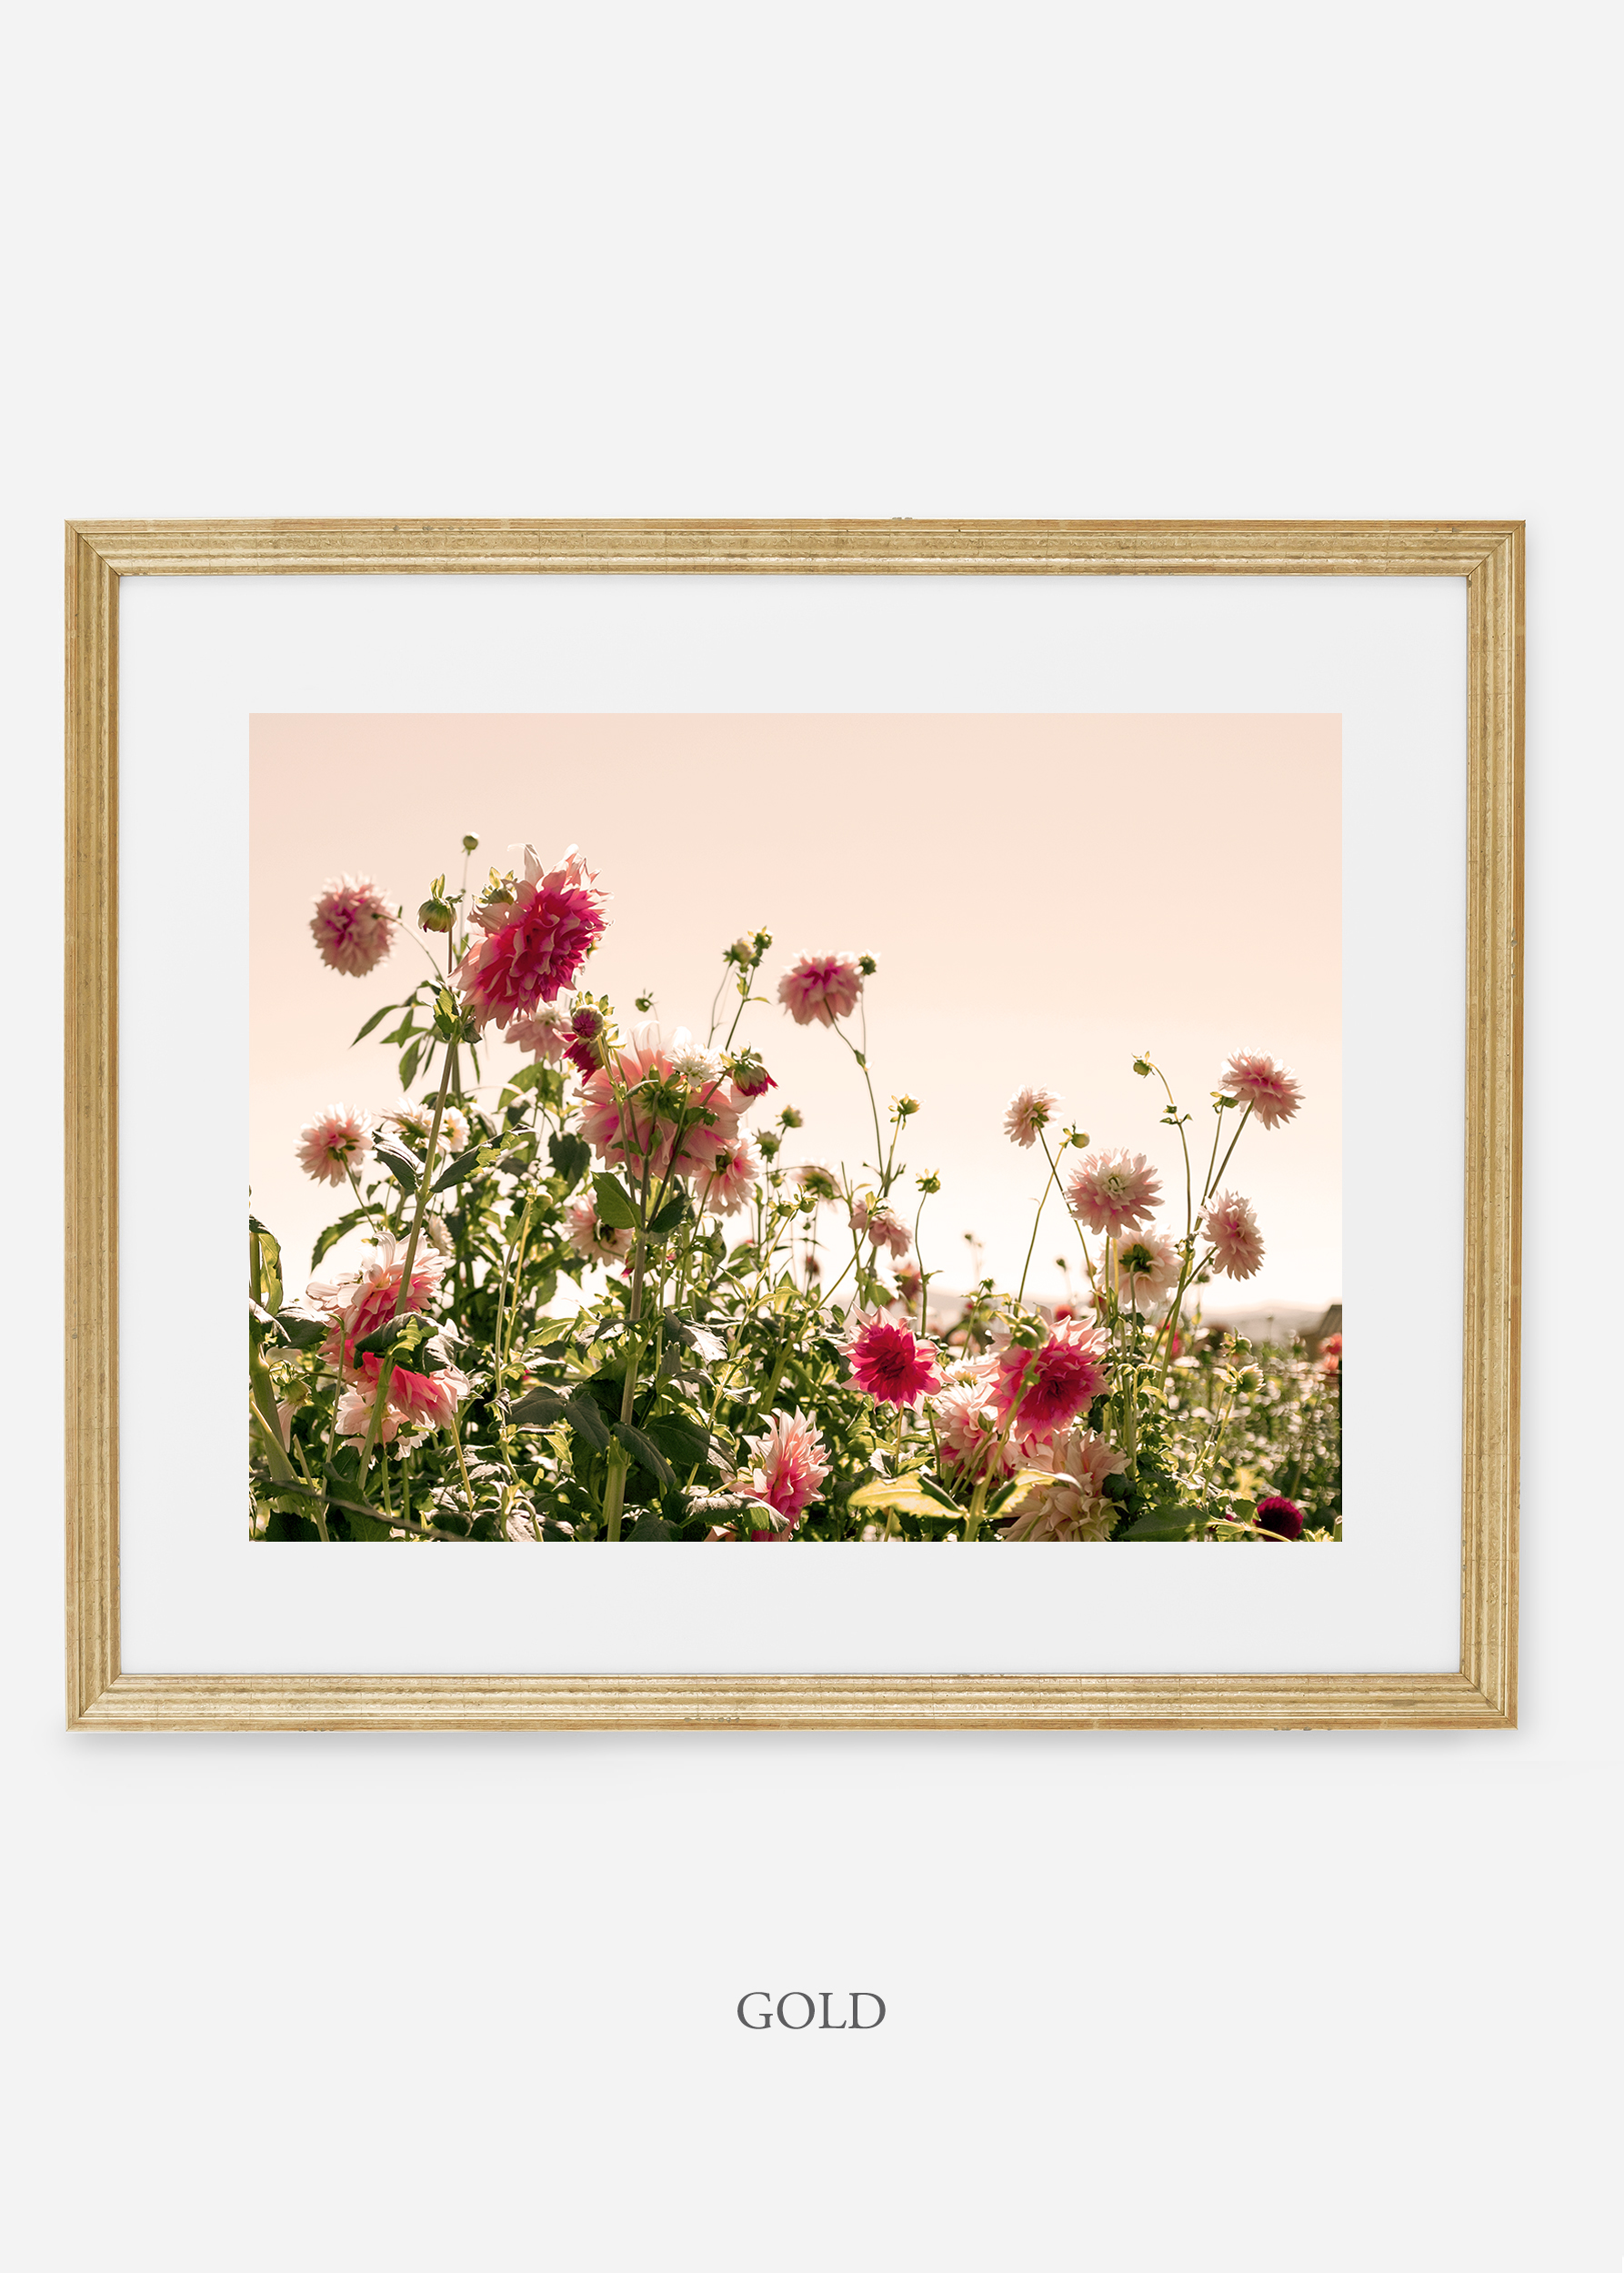 GoldFrame_DahliaNo.7_WilderCalifornia_Art_Floral_Homedecor_Prints_Dahlia_Botanical_Artwork_Interiordesign.jpg